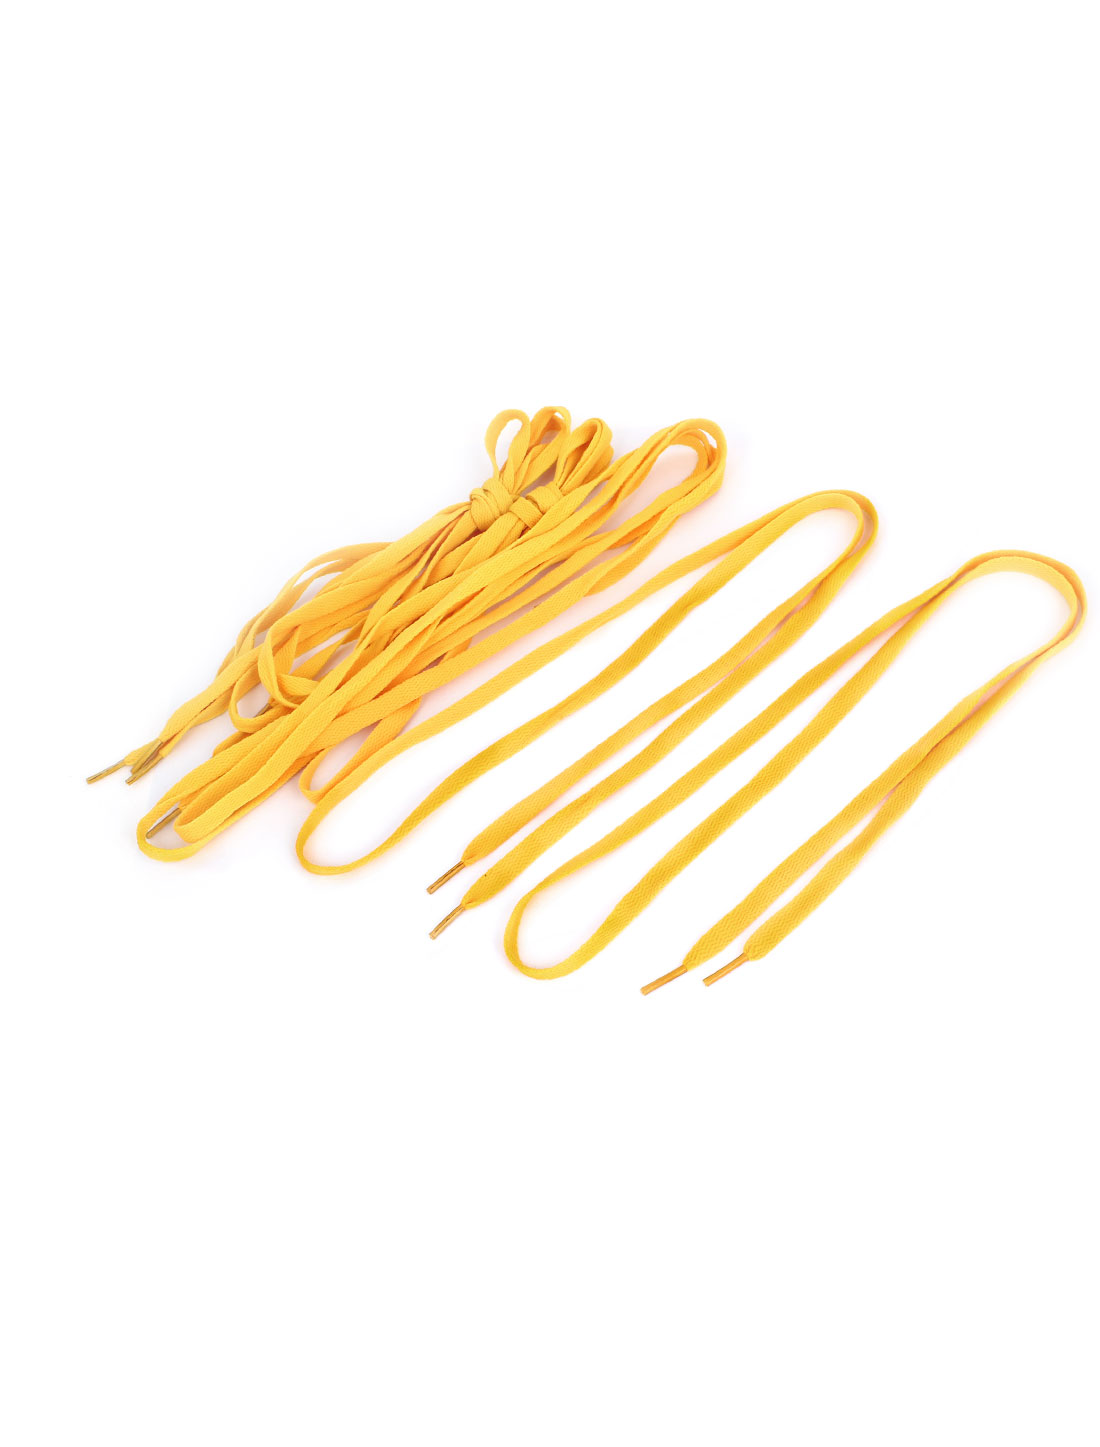 Ladies Men Yellow Sports Leisure Sneakers Flat Shoelaces Shoes String 4 Pairs